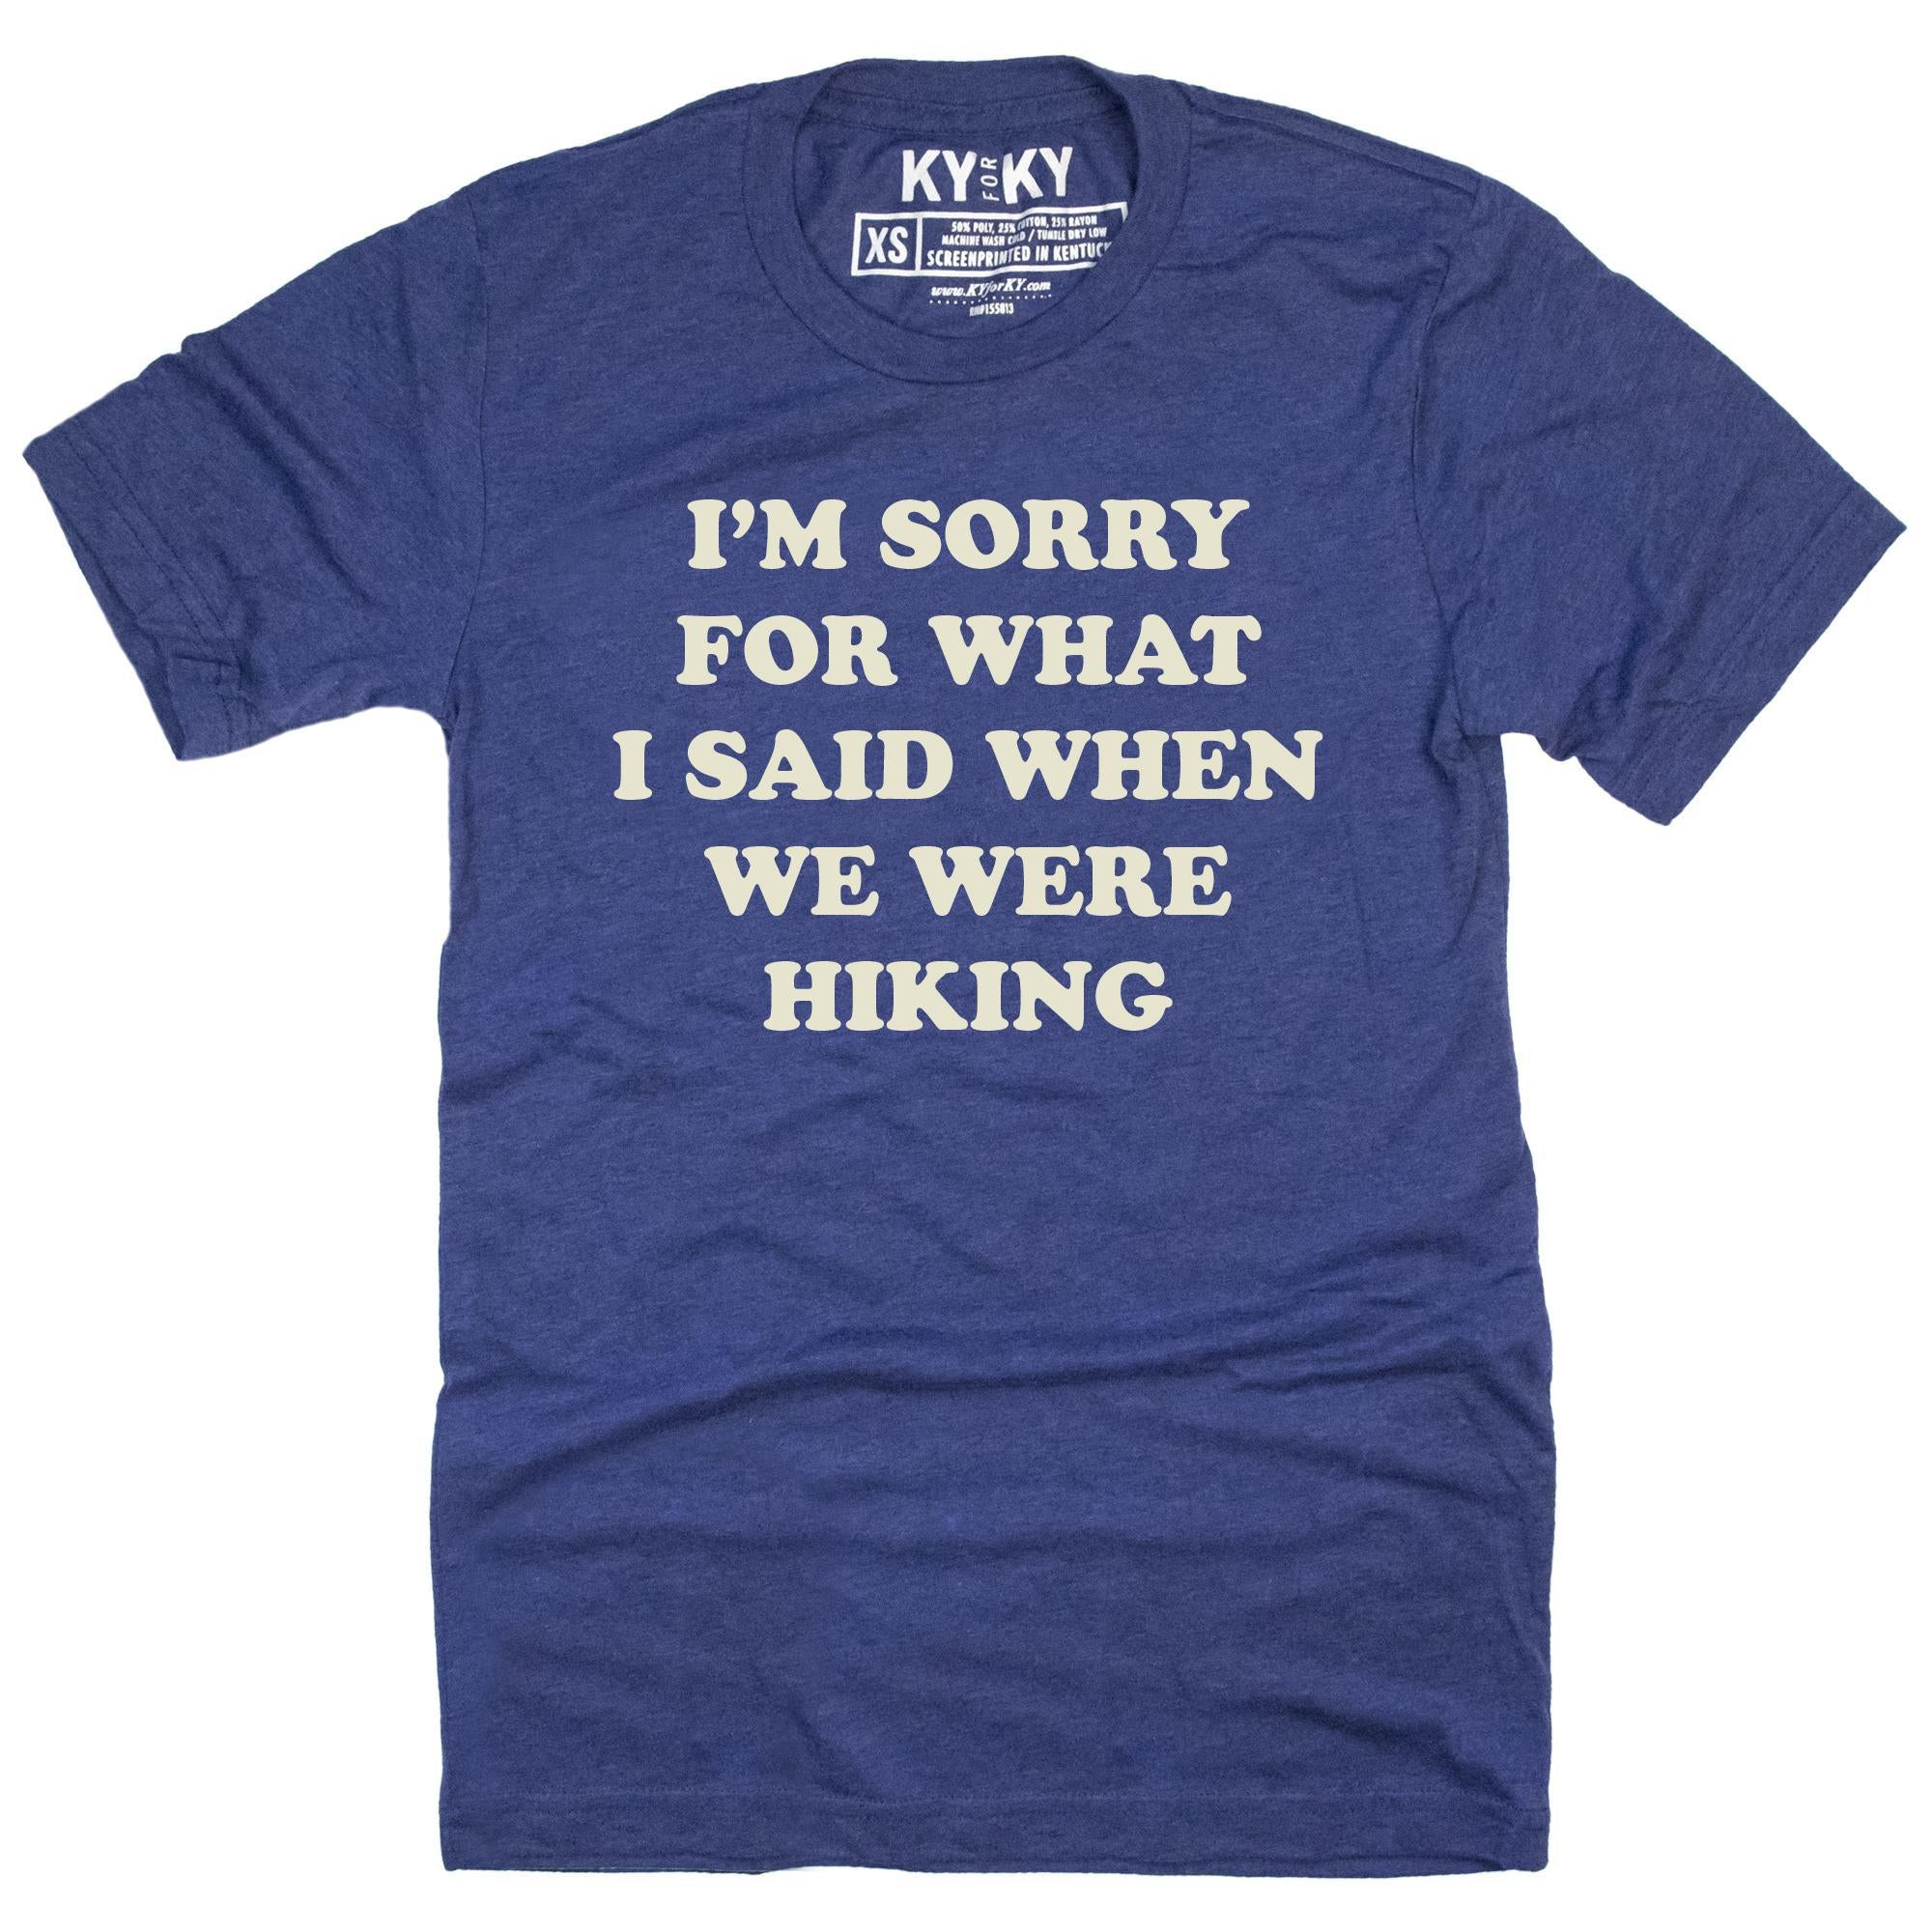 I'm Sorry For What I Said When Hiking T-Shirt-T-Shirt-KY for KY Store